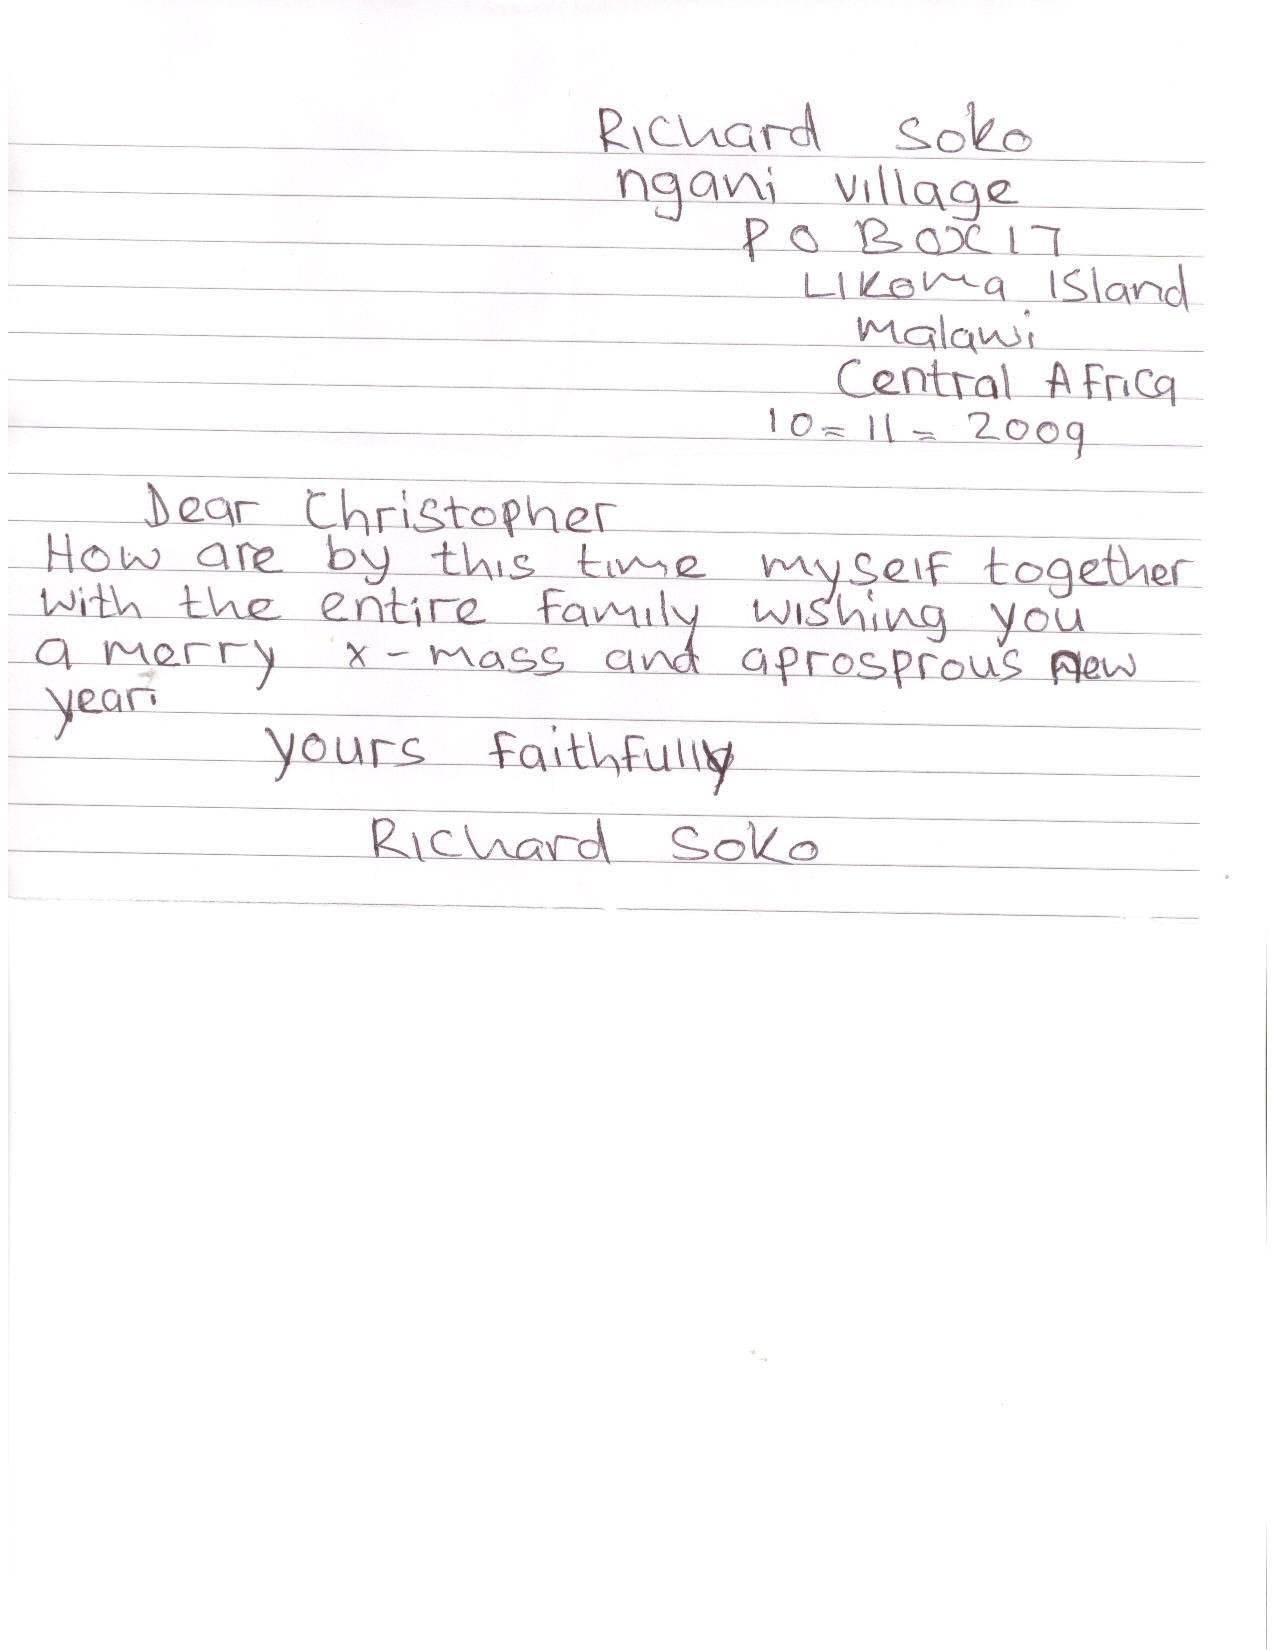 Malawi this is africa this is the third letter ive received from richard since we met in october 2008 i have been a spectacular failure at upholding my side of the m4hsunfo